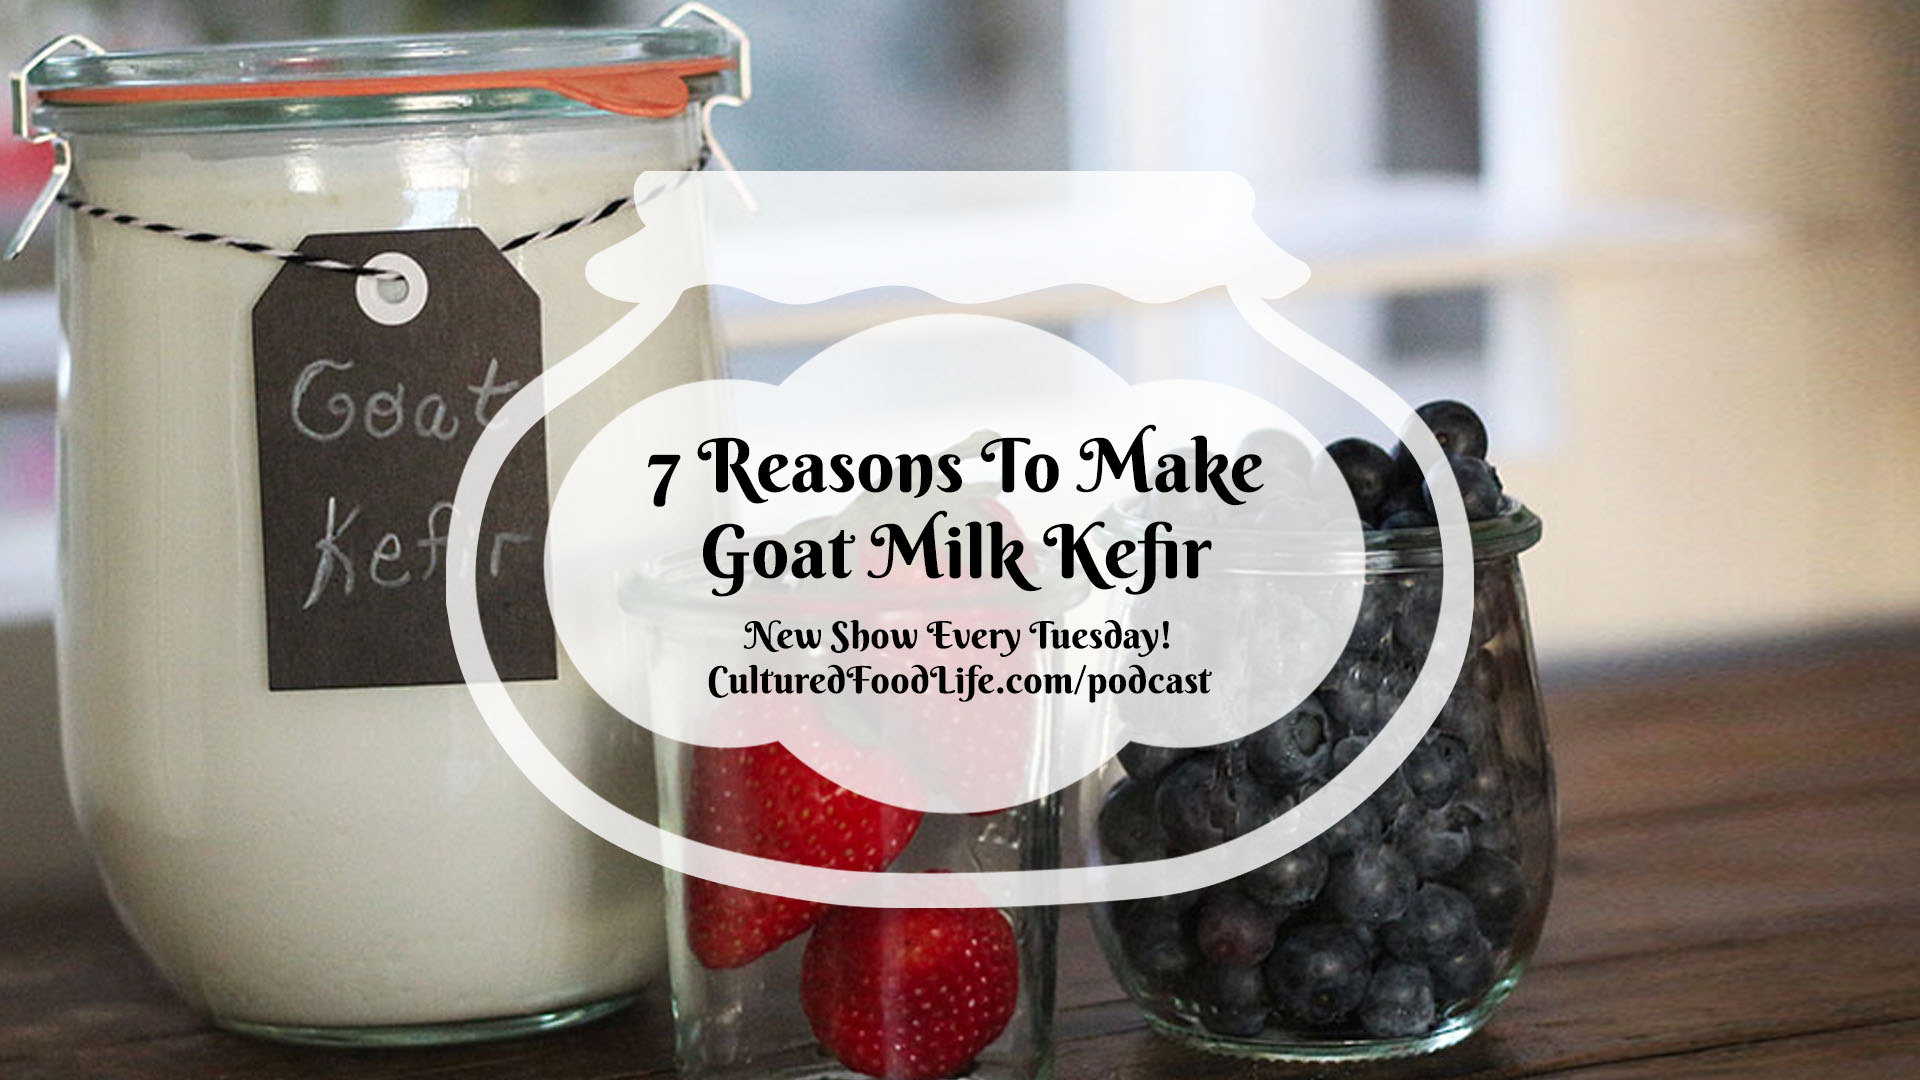 7 Reasons To Make Goat Milk Kefir